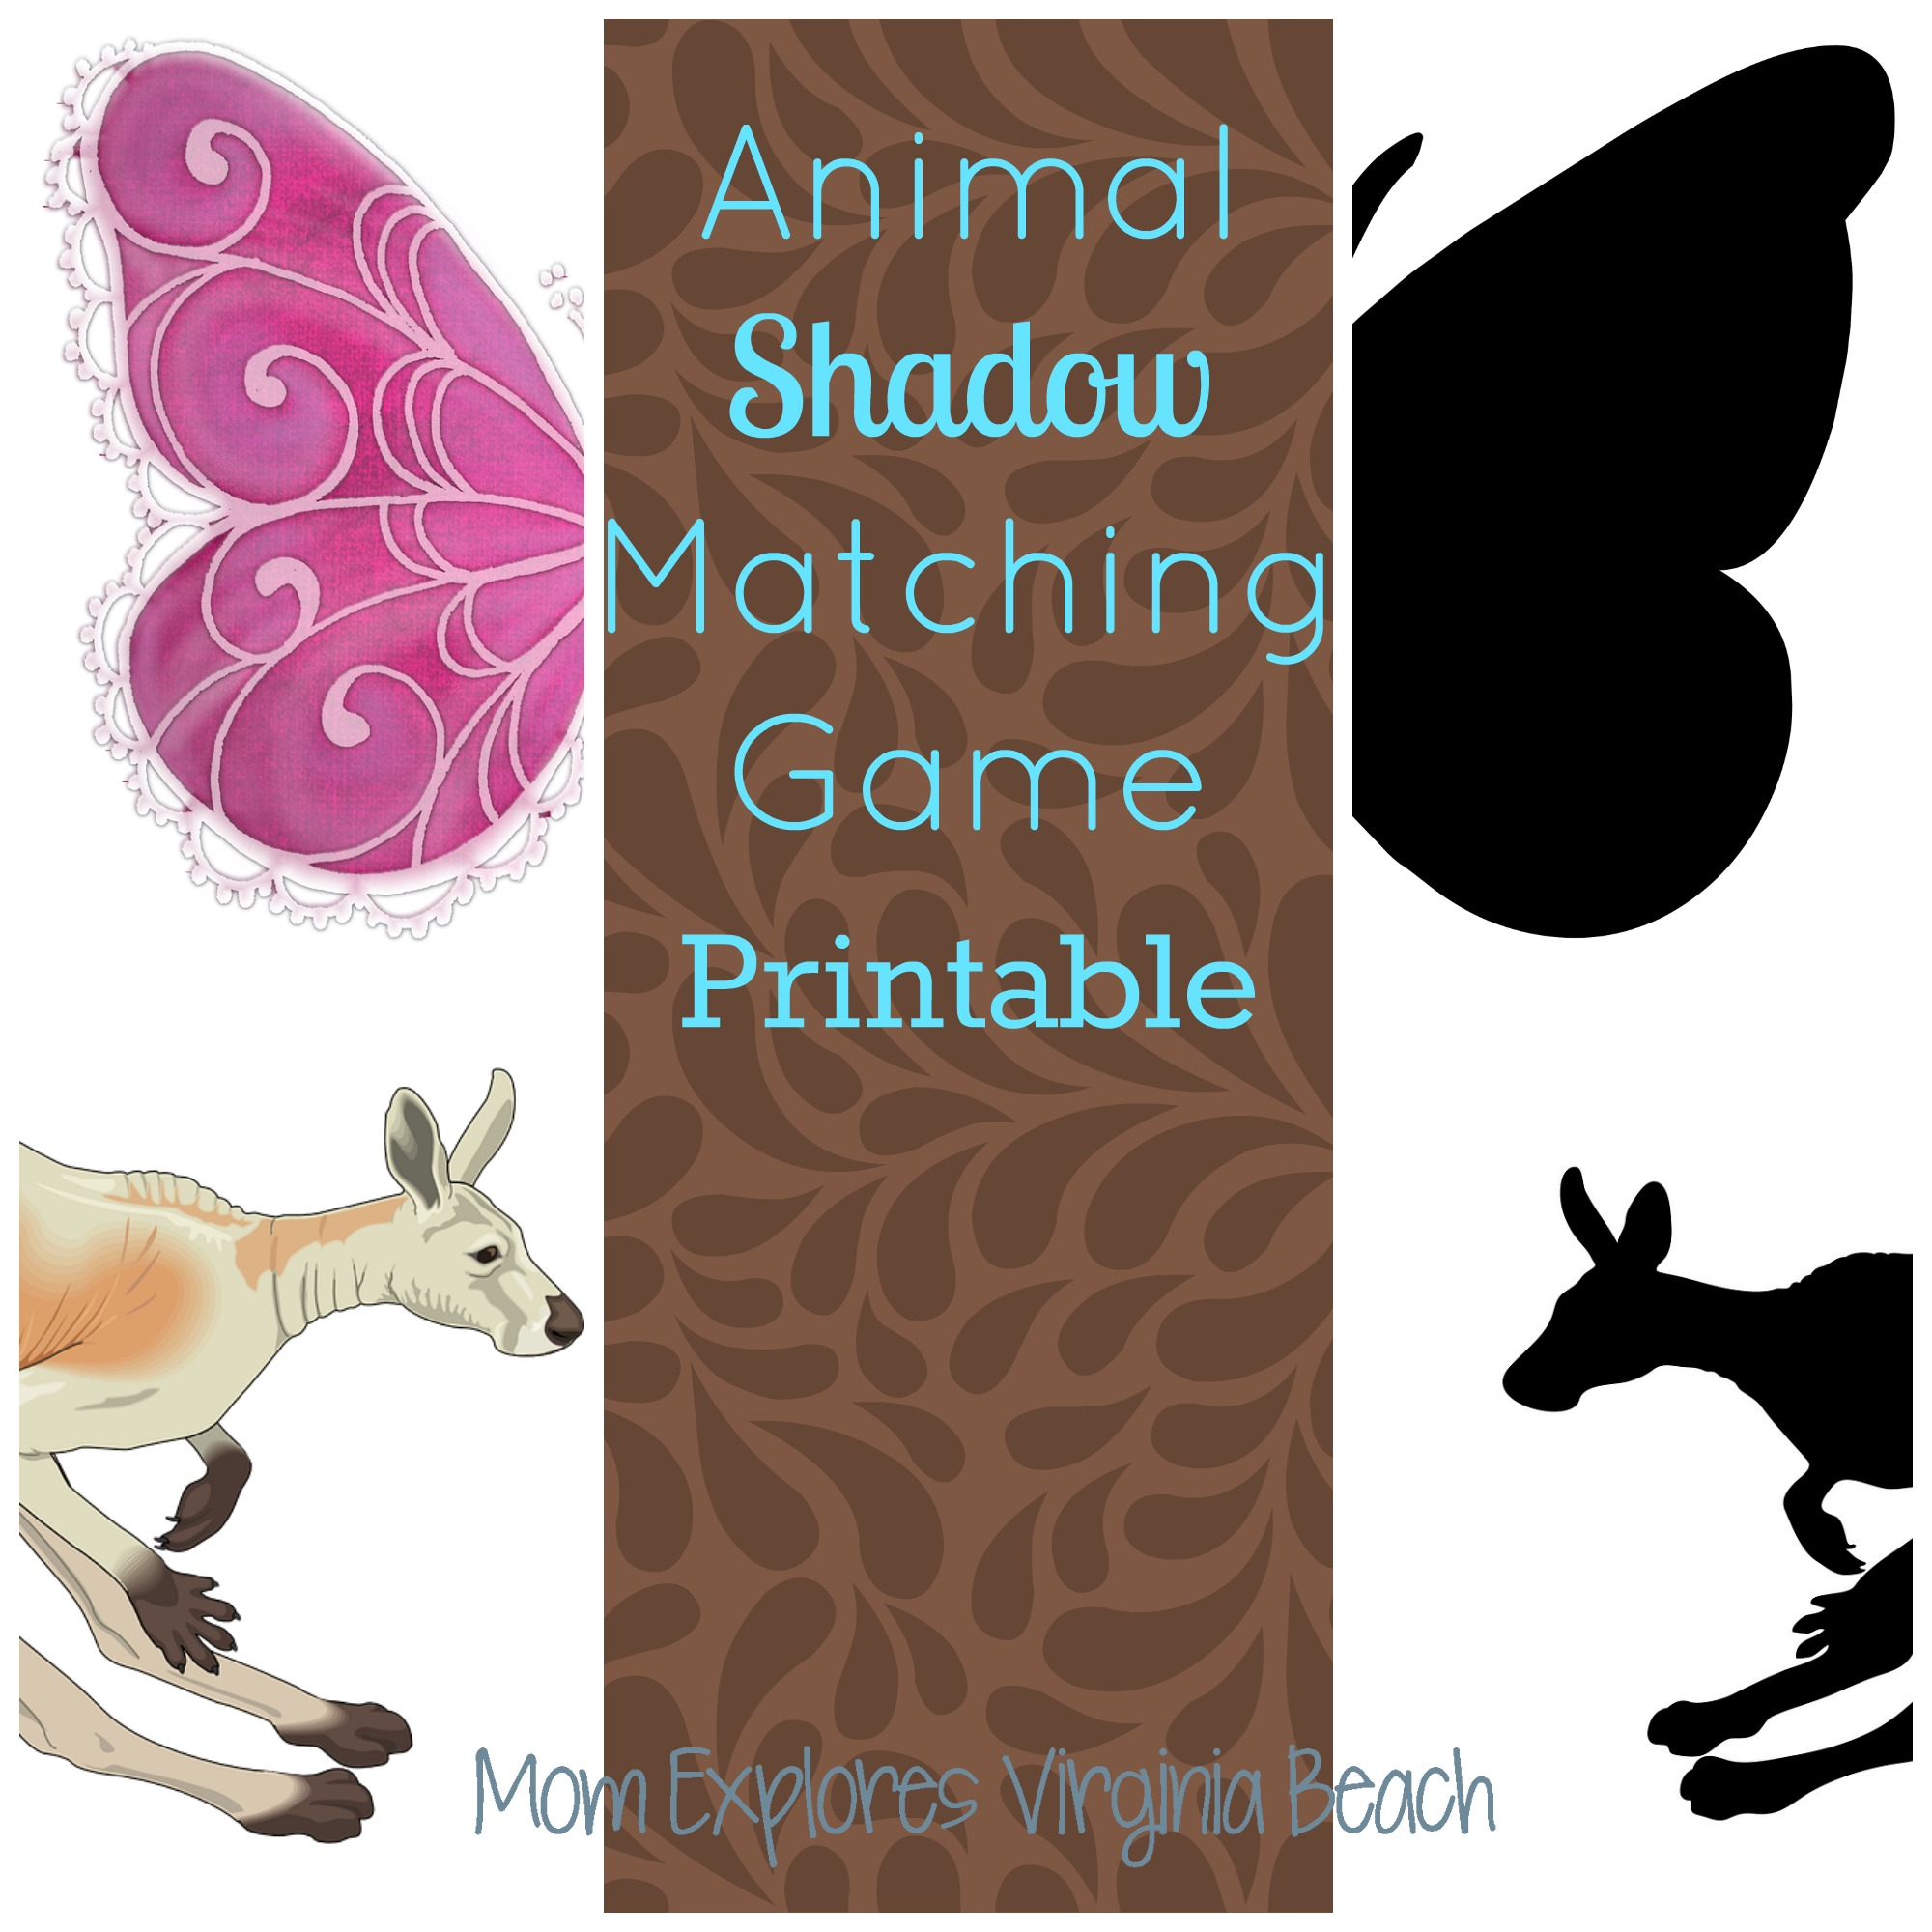 Animal Shadow Matching Game Printable